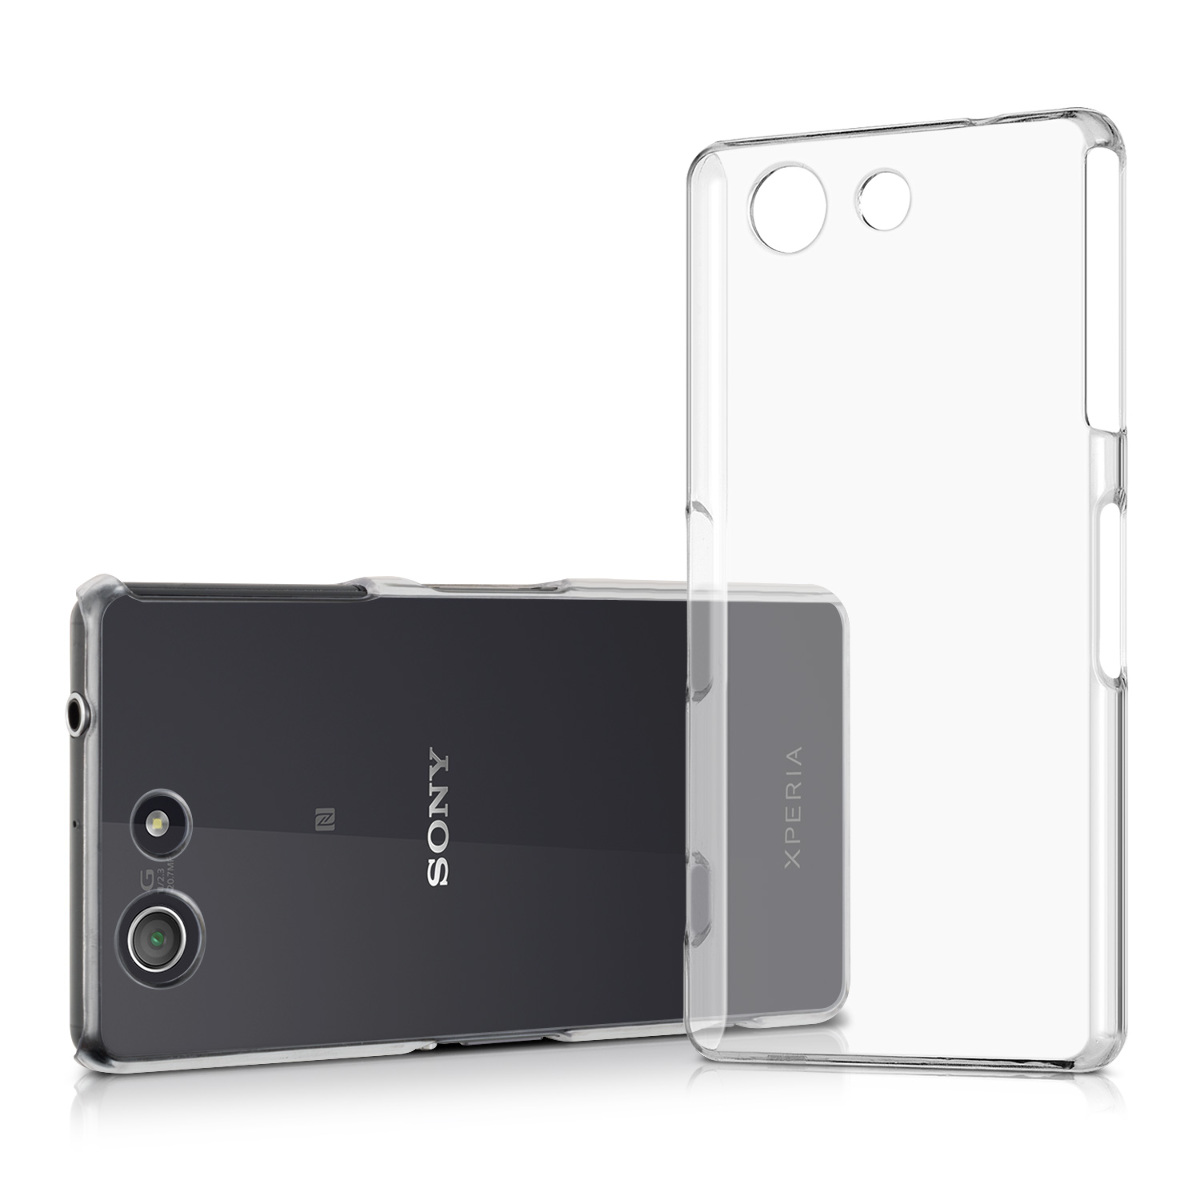 kwmobile HARD CASE CRYSTAL FÜR SONY XPERIA Z3 COMPACT TRANSPARENT HANDY HÜLLE